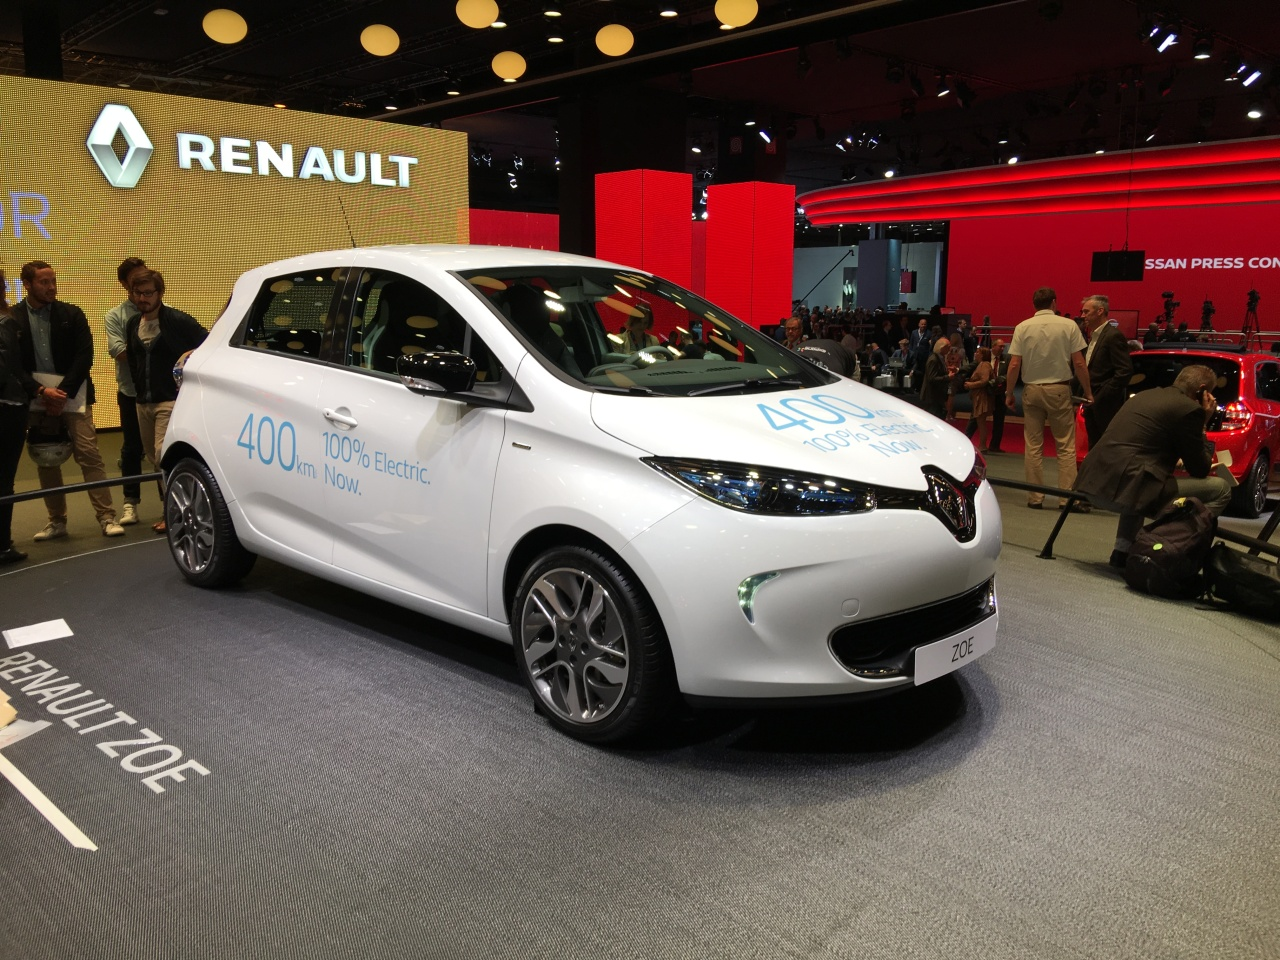 live paris 2016 renault zoe acum cu autonomie electric de 400 km headline salonul de la. Black Bedroom Furniture Sets. Home Design Ideas